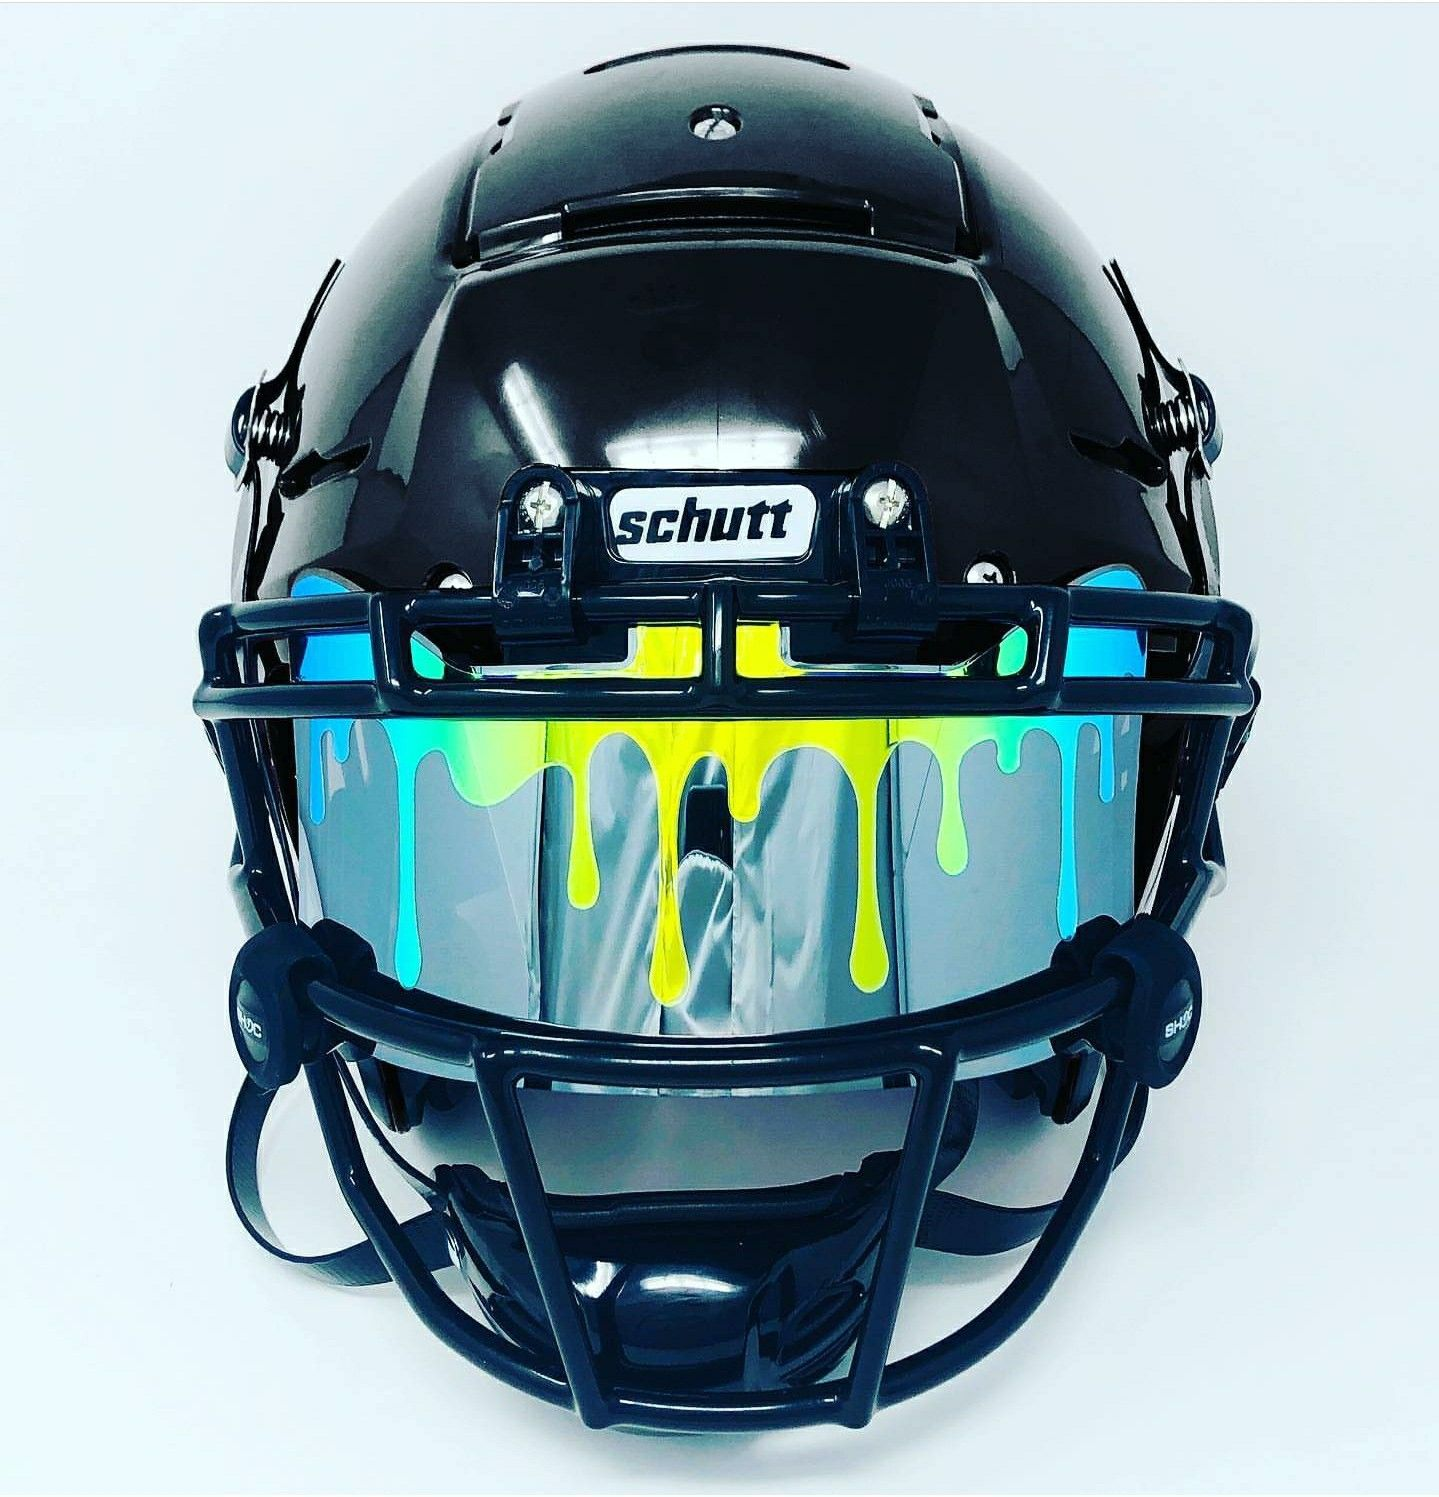 Pin By Djspicemix On Spicestudios Motorcycles Football Helmets Cool Football Helmets Football